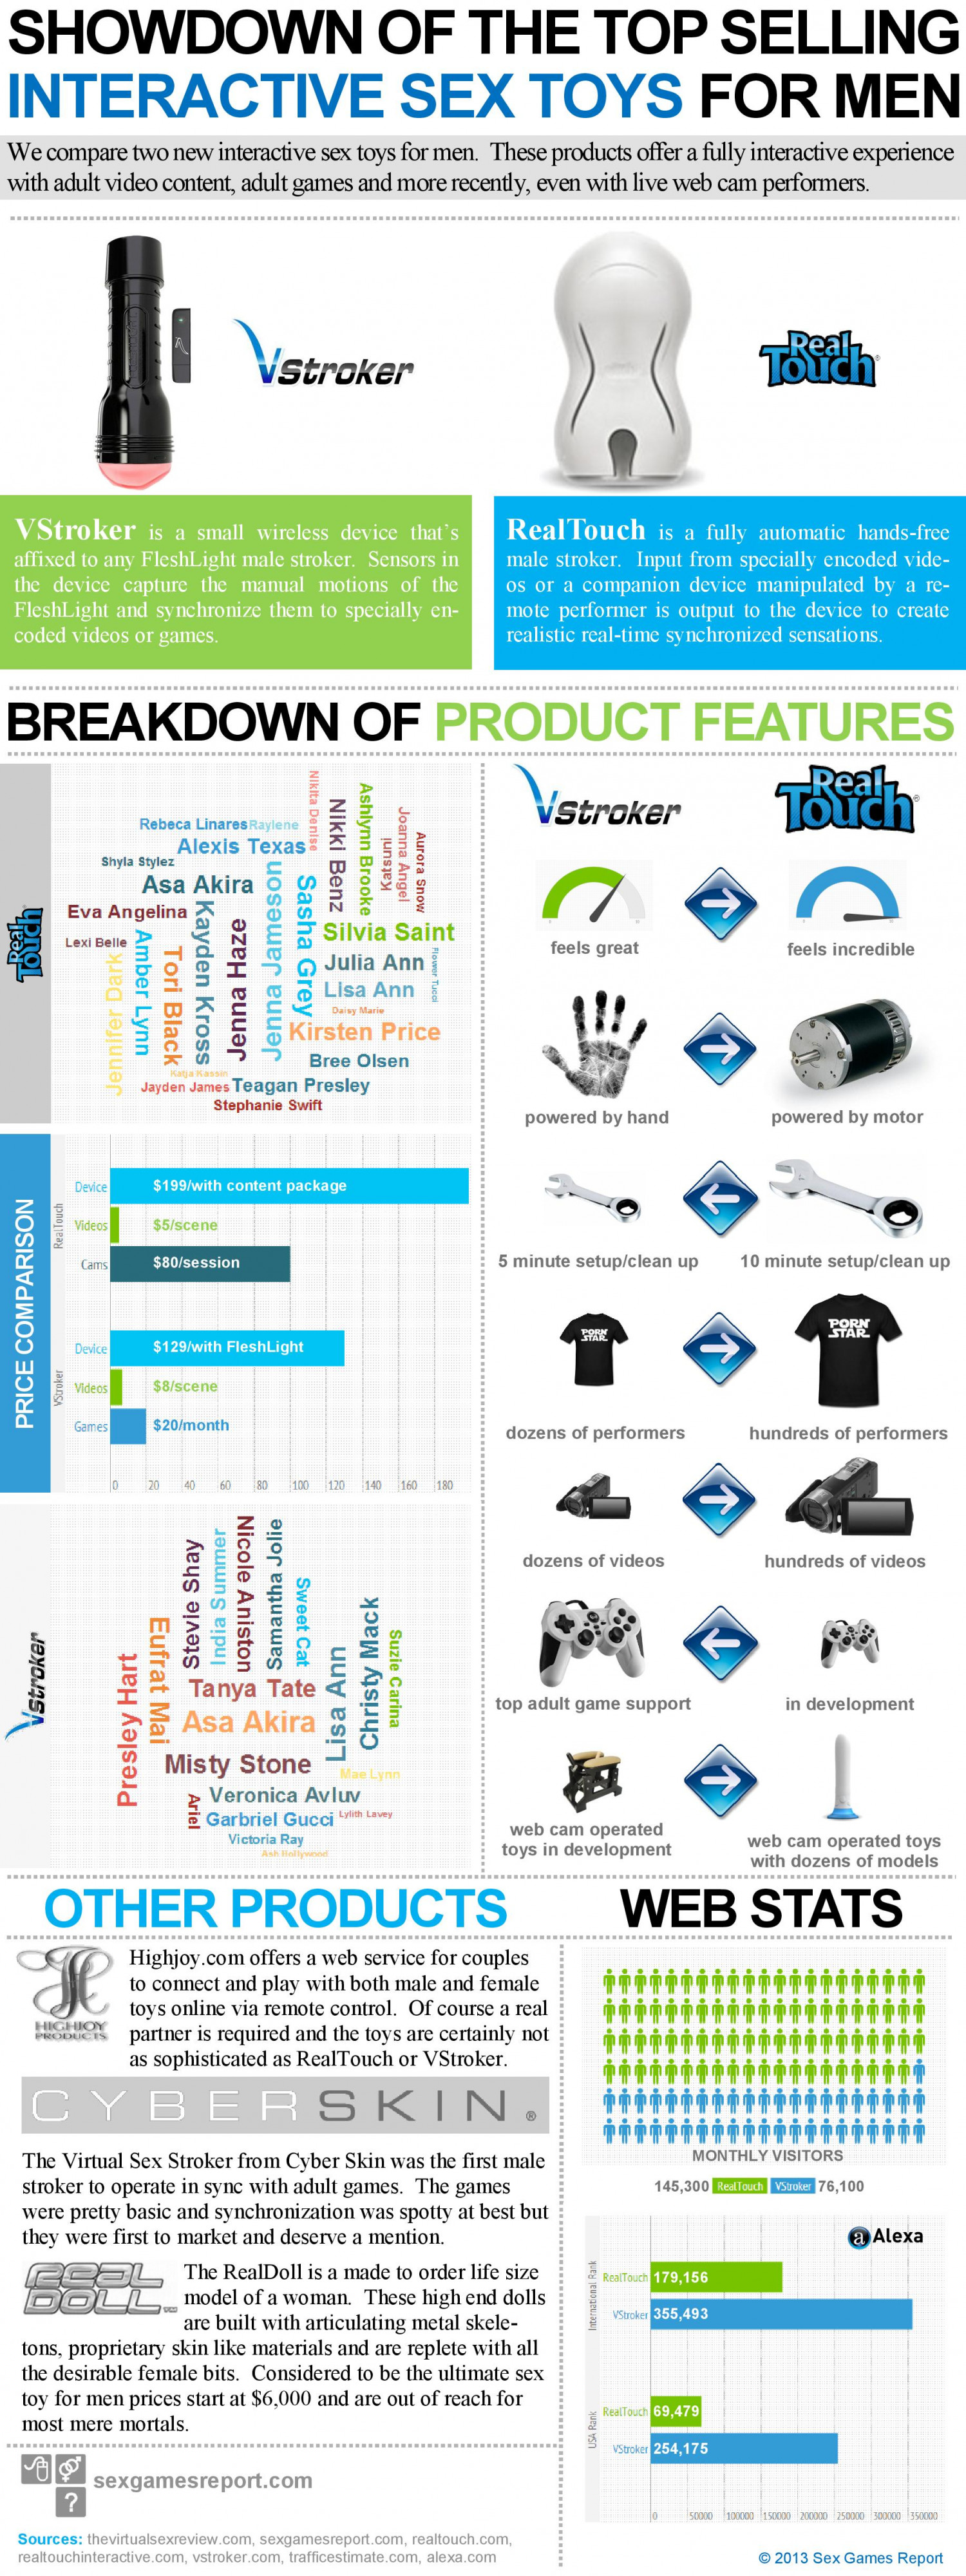 Showdown of the Top Selling Interactive Sex Toys for Men Infographic